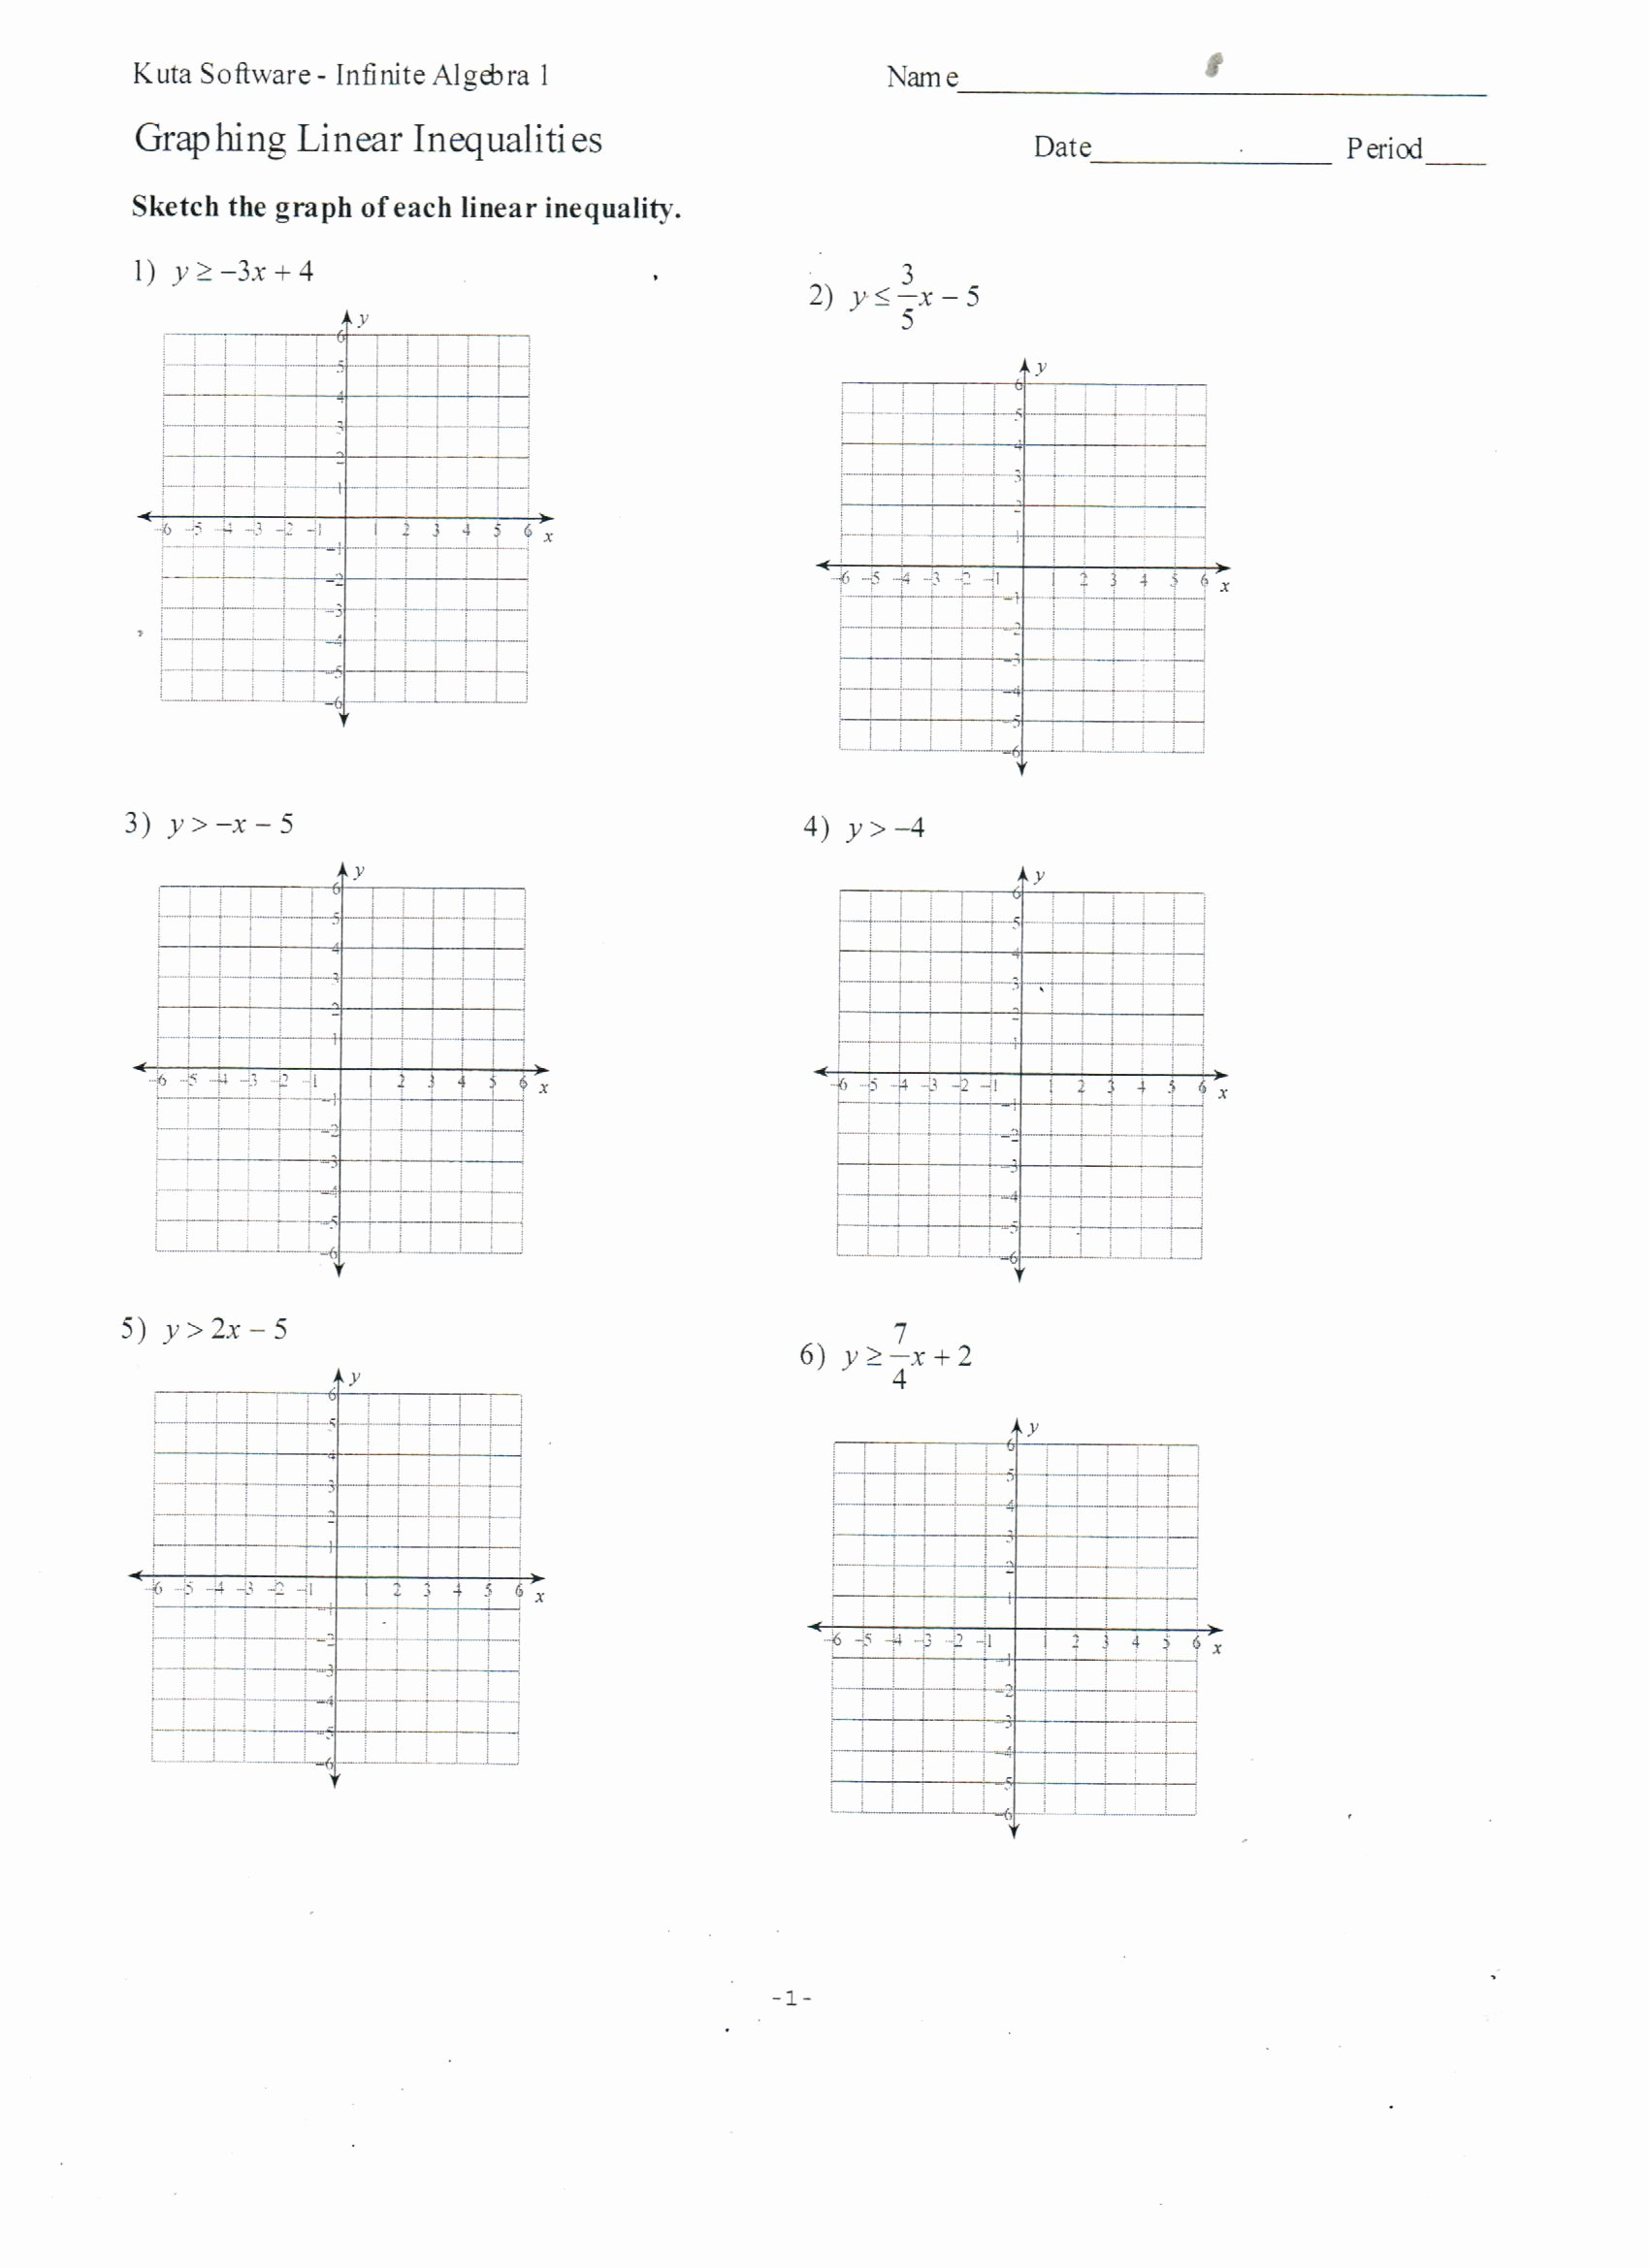 Graphing Linear Equations Worksheet Answers Awesome Graphing Linear Equations Worksheet and Answers Tessshebaylo